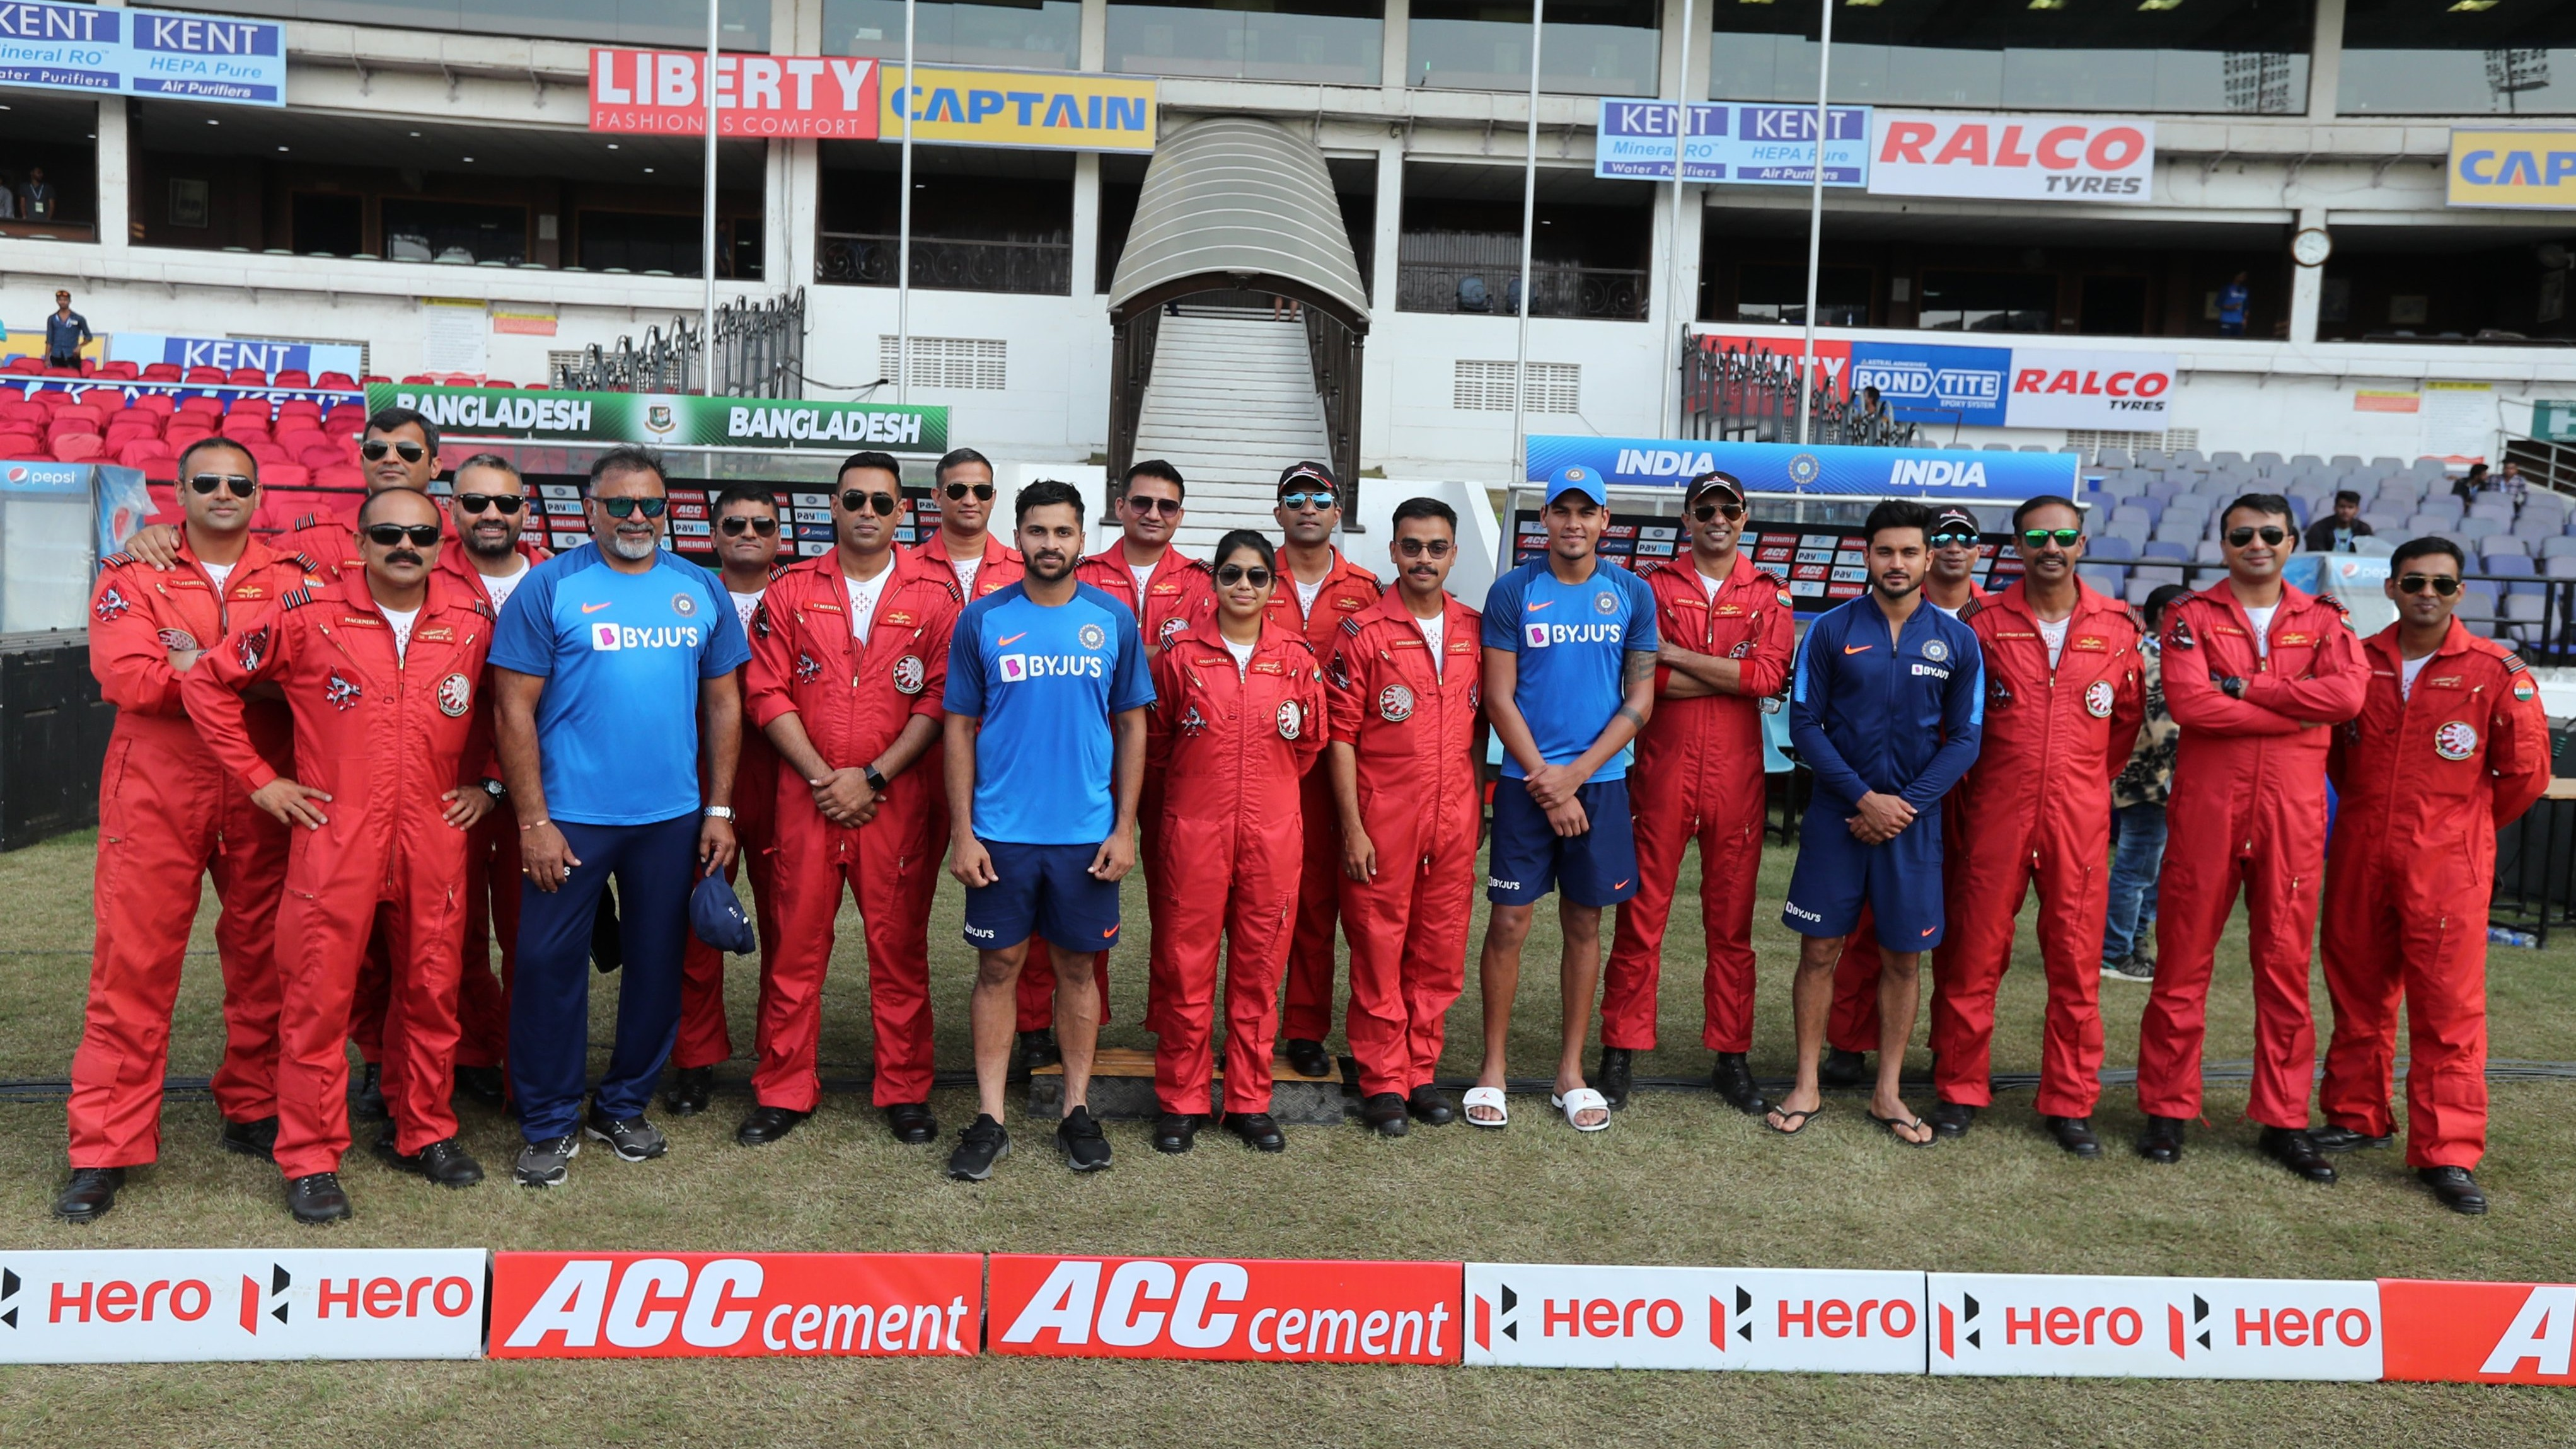 IND v BAN 2019: Team India spends time with Air Force pilots ahead of T20I series decider in Nagpur